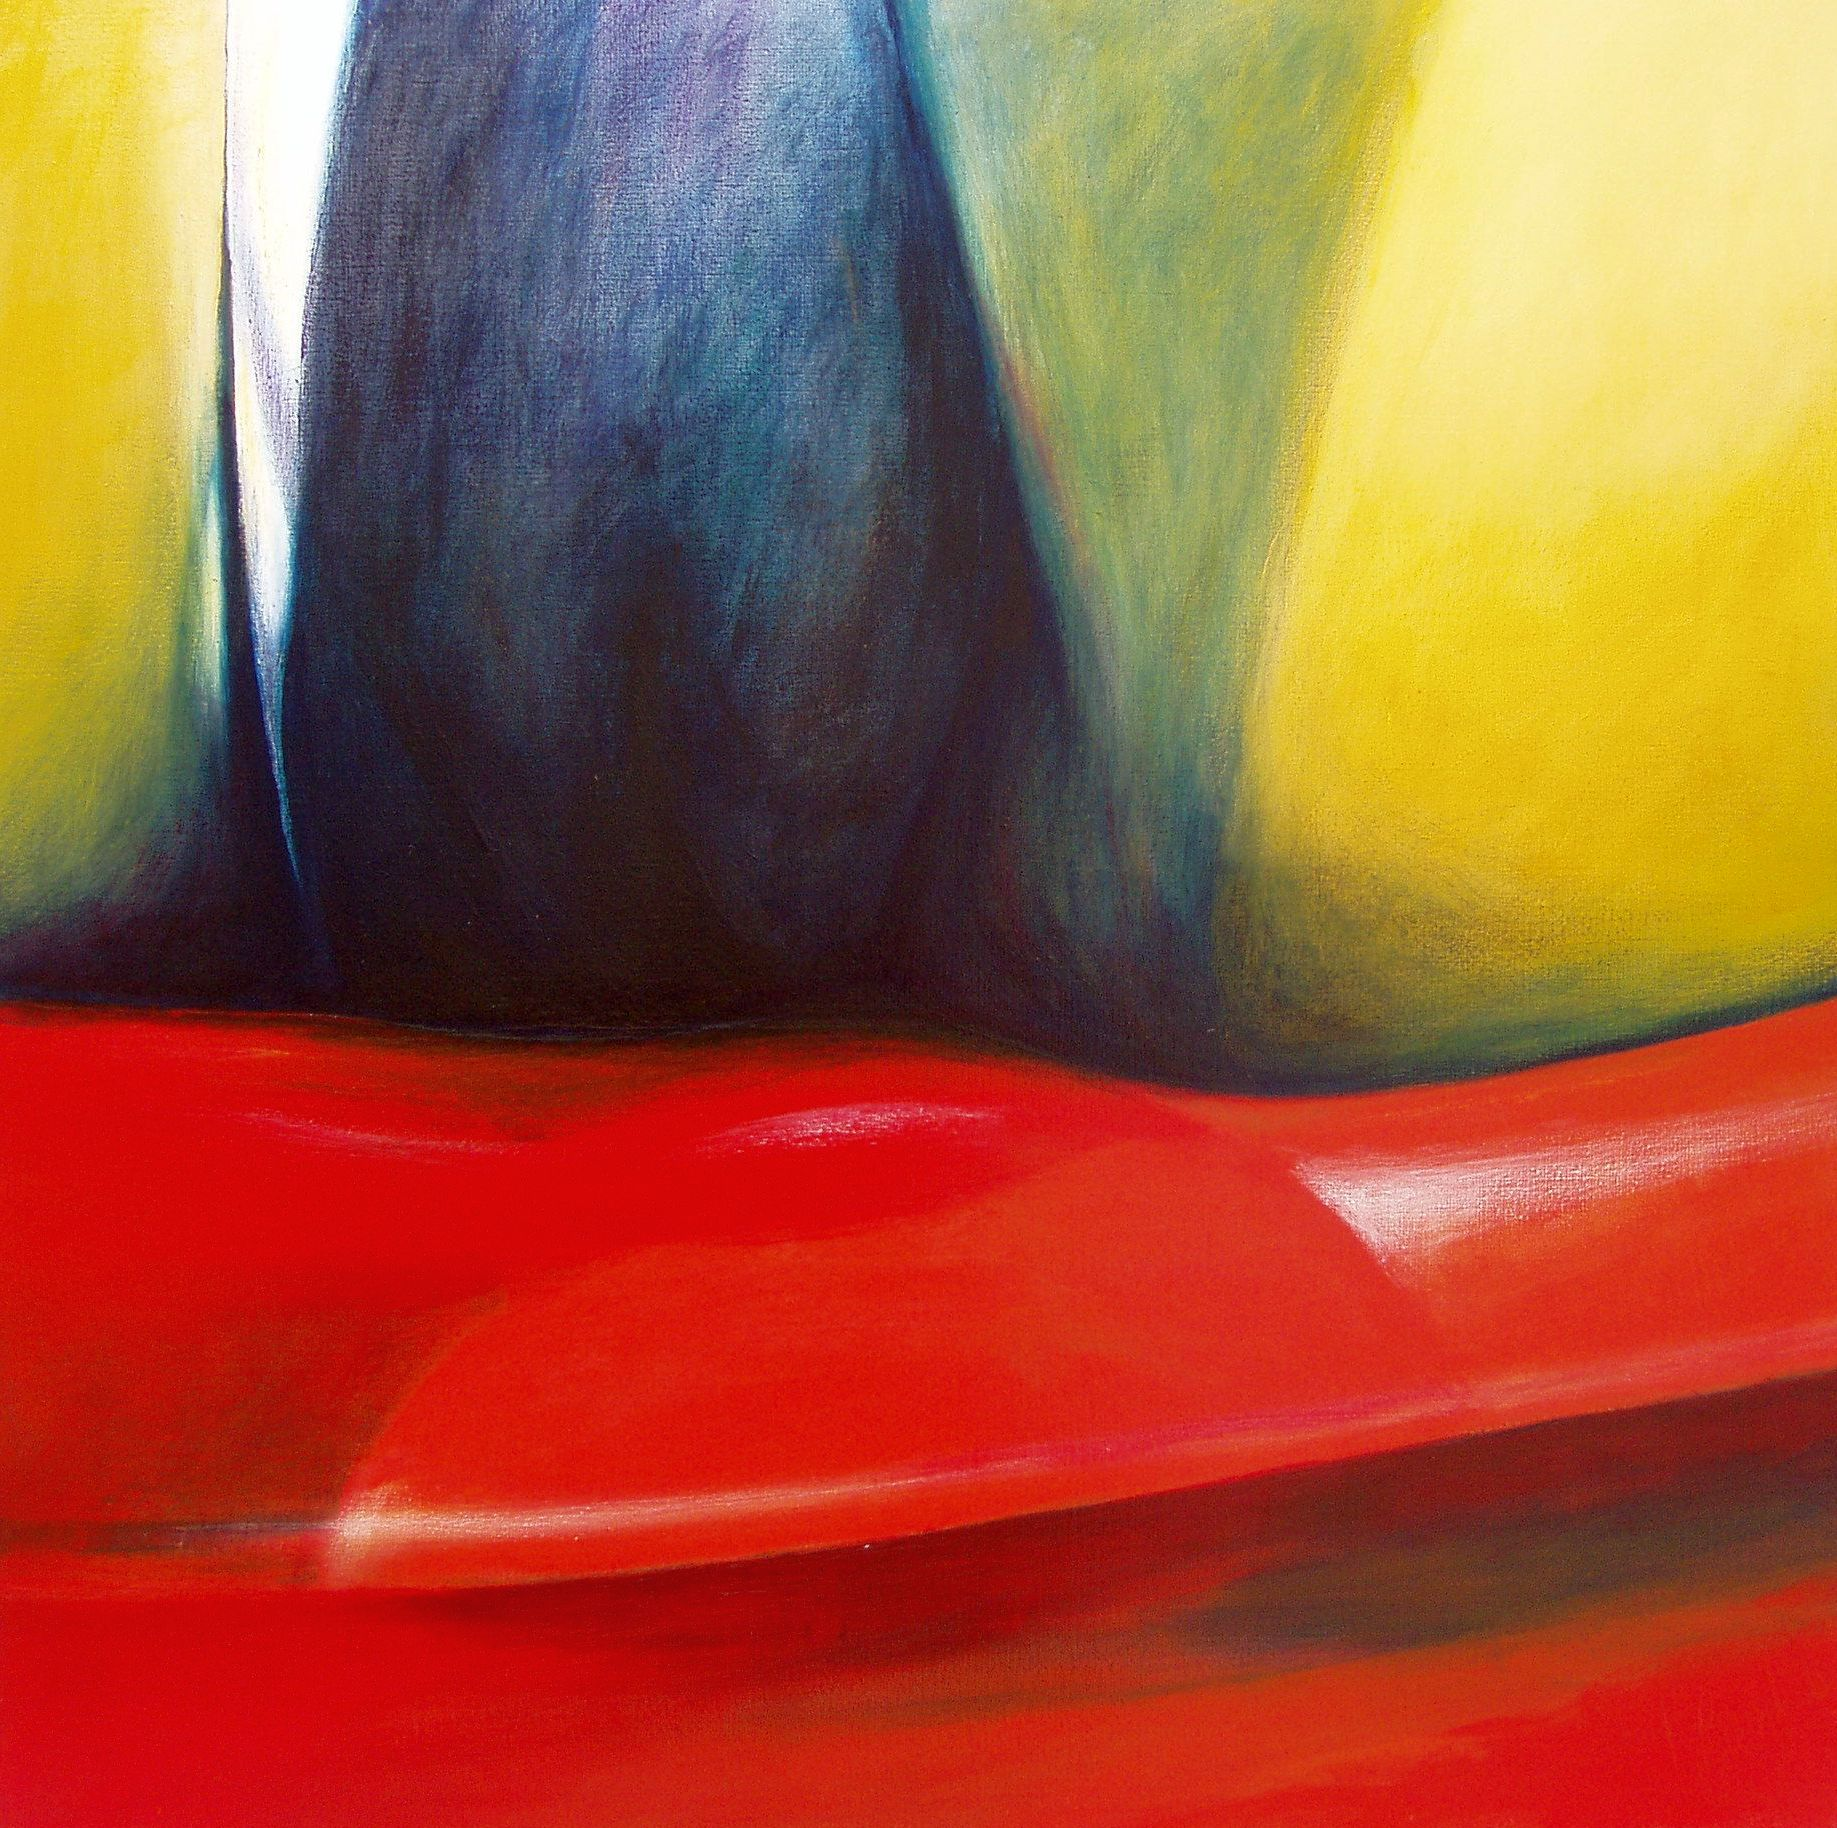 Chaise Rouge willem berkers acryl on canvas